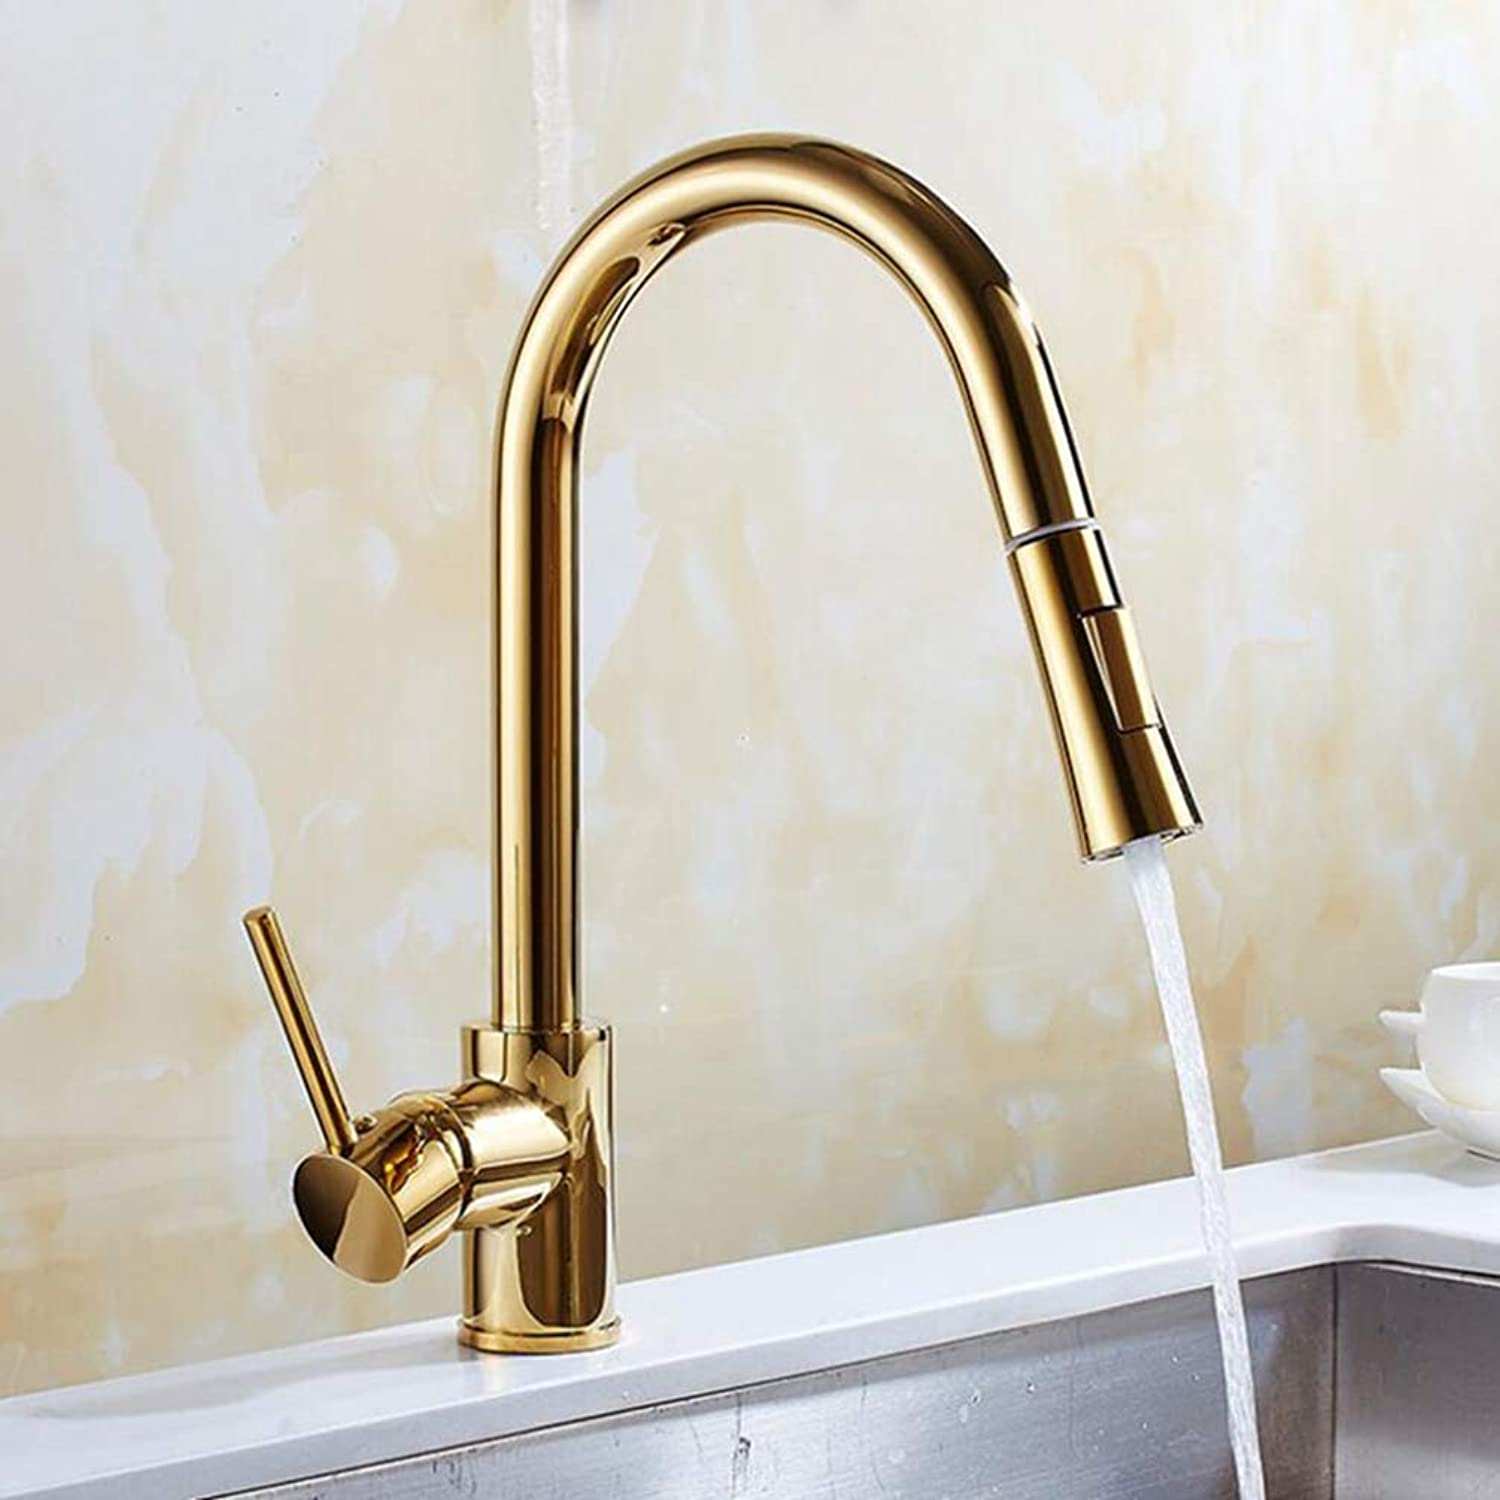 FZHLR Chrome∕gold∕Nickel Kitchen Faucets Silver Single Handle Pull Out Kitchen Tap Single Hole redating Water Mixer Tap Mixer Tap,gold